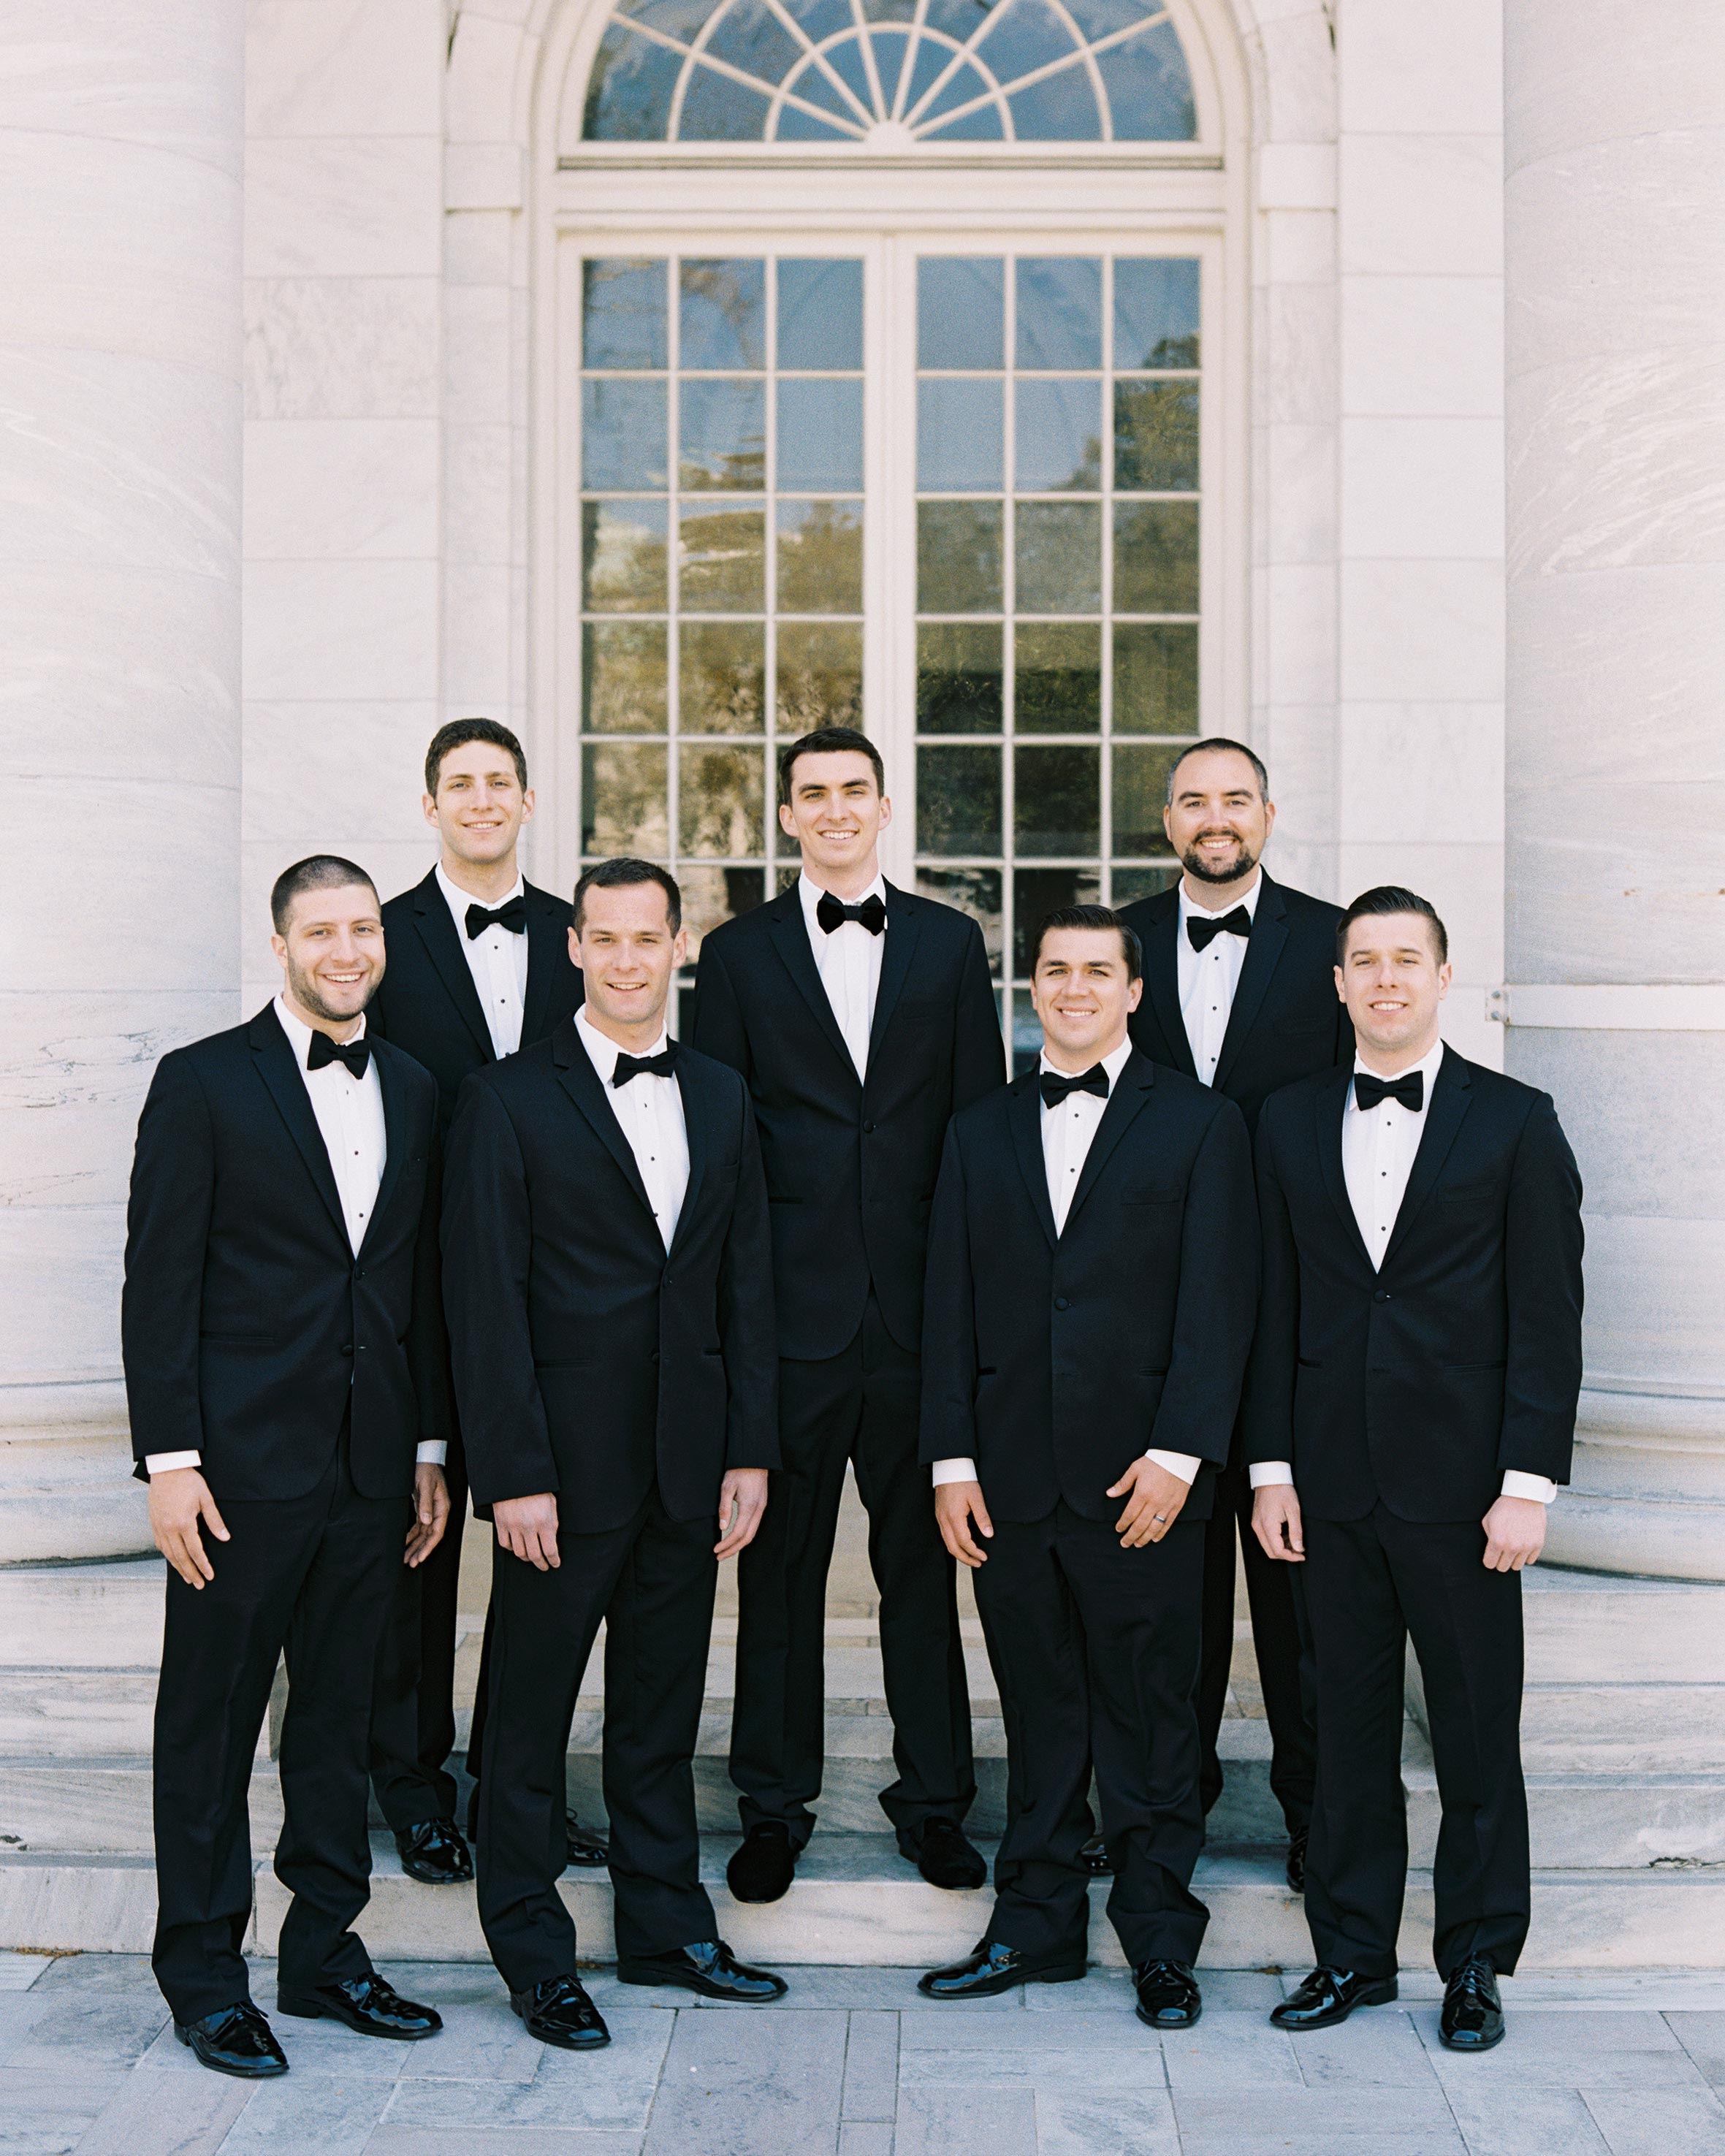 arielle-matt-wedding-groomsmen-118-6134241-0716.jpg